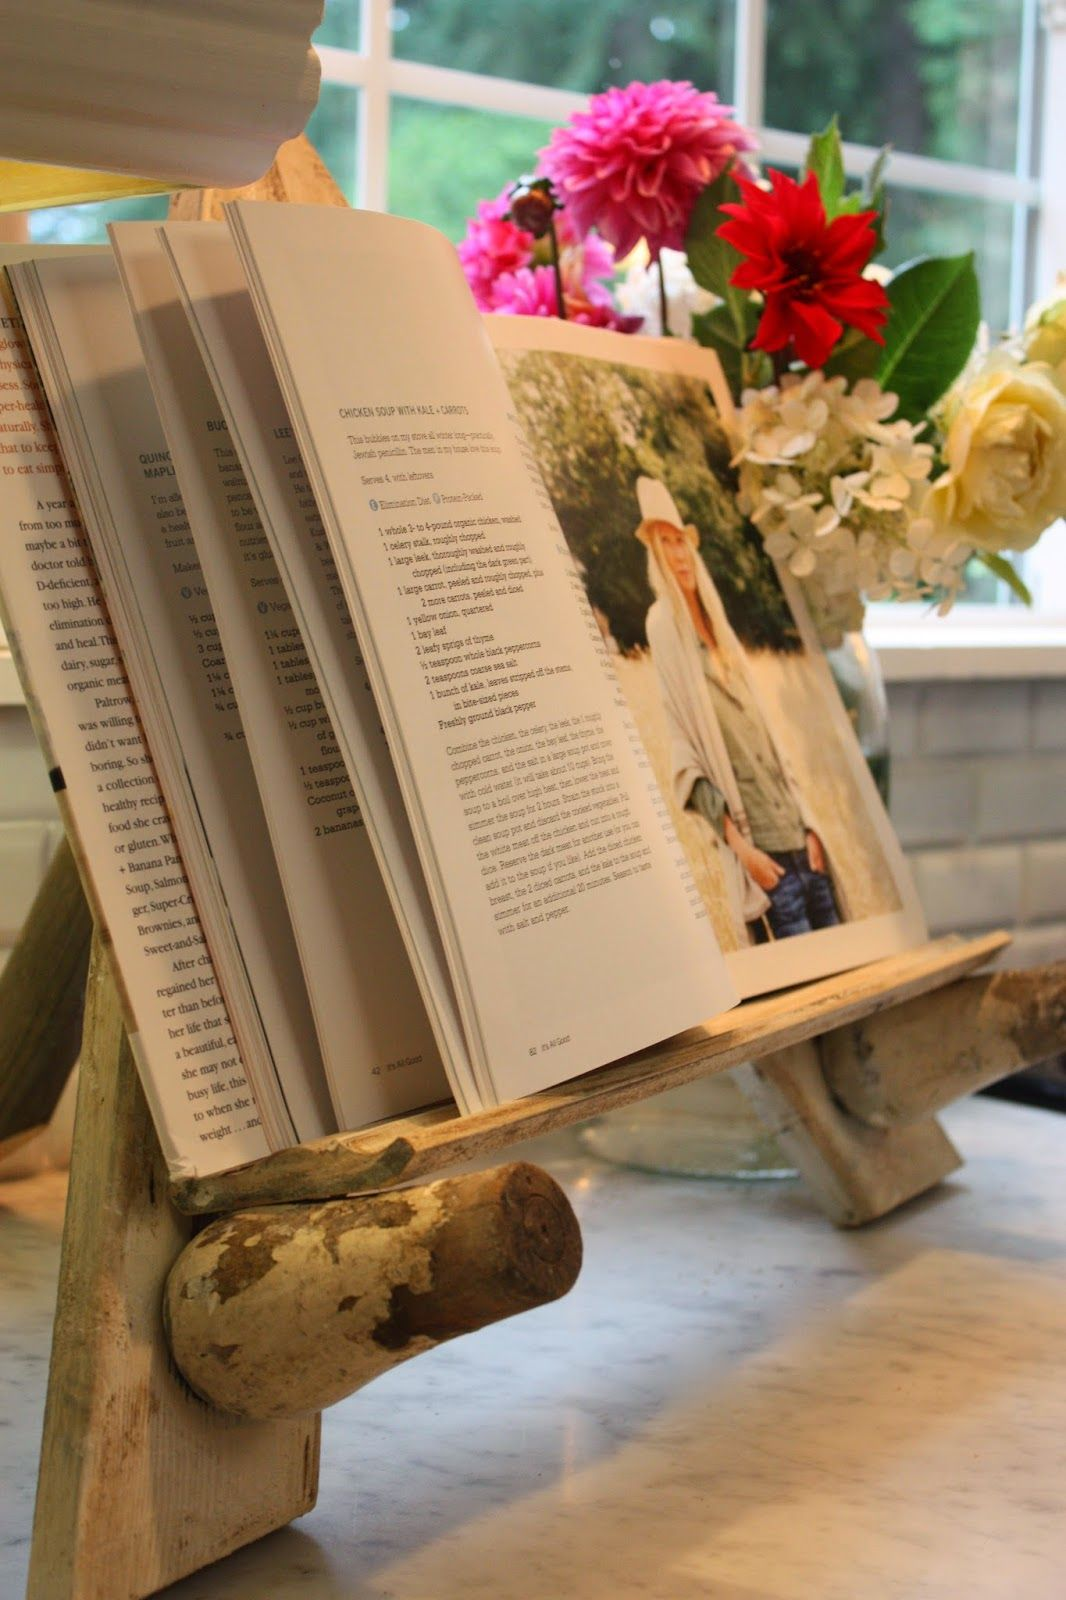 Diy projects recipes and home decorating by my sweet savannah